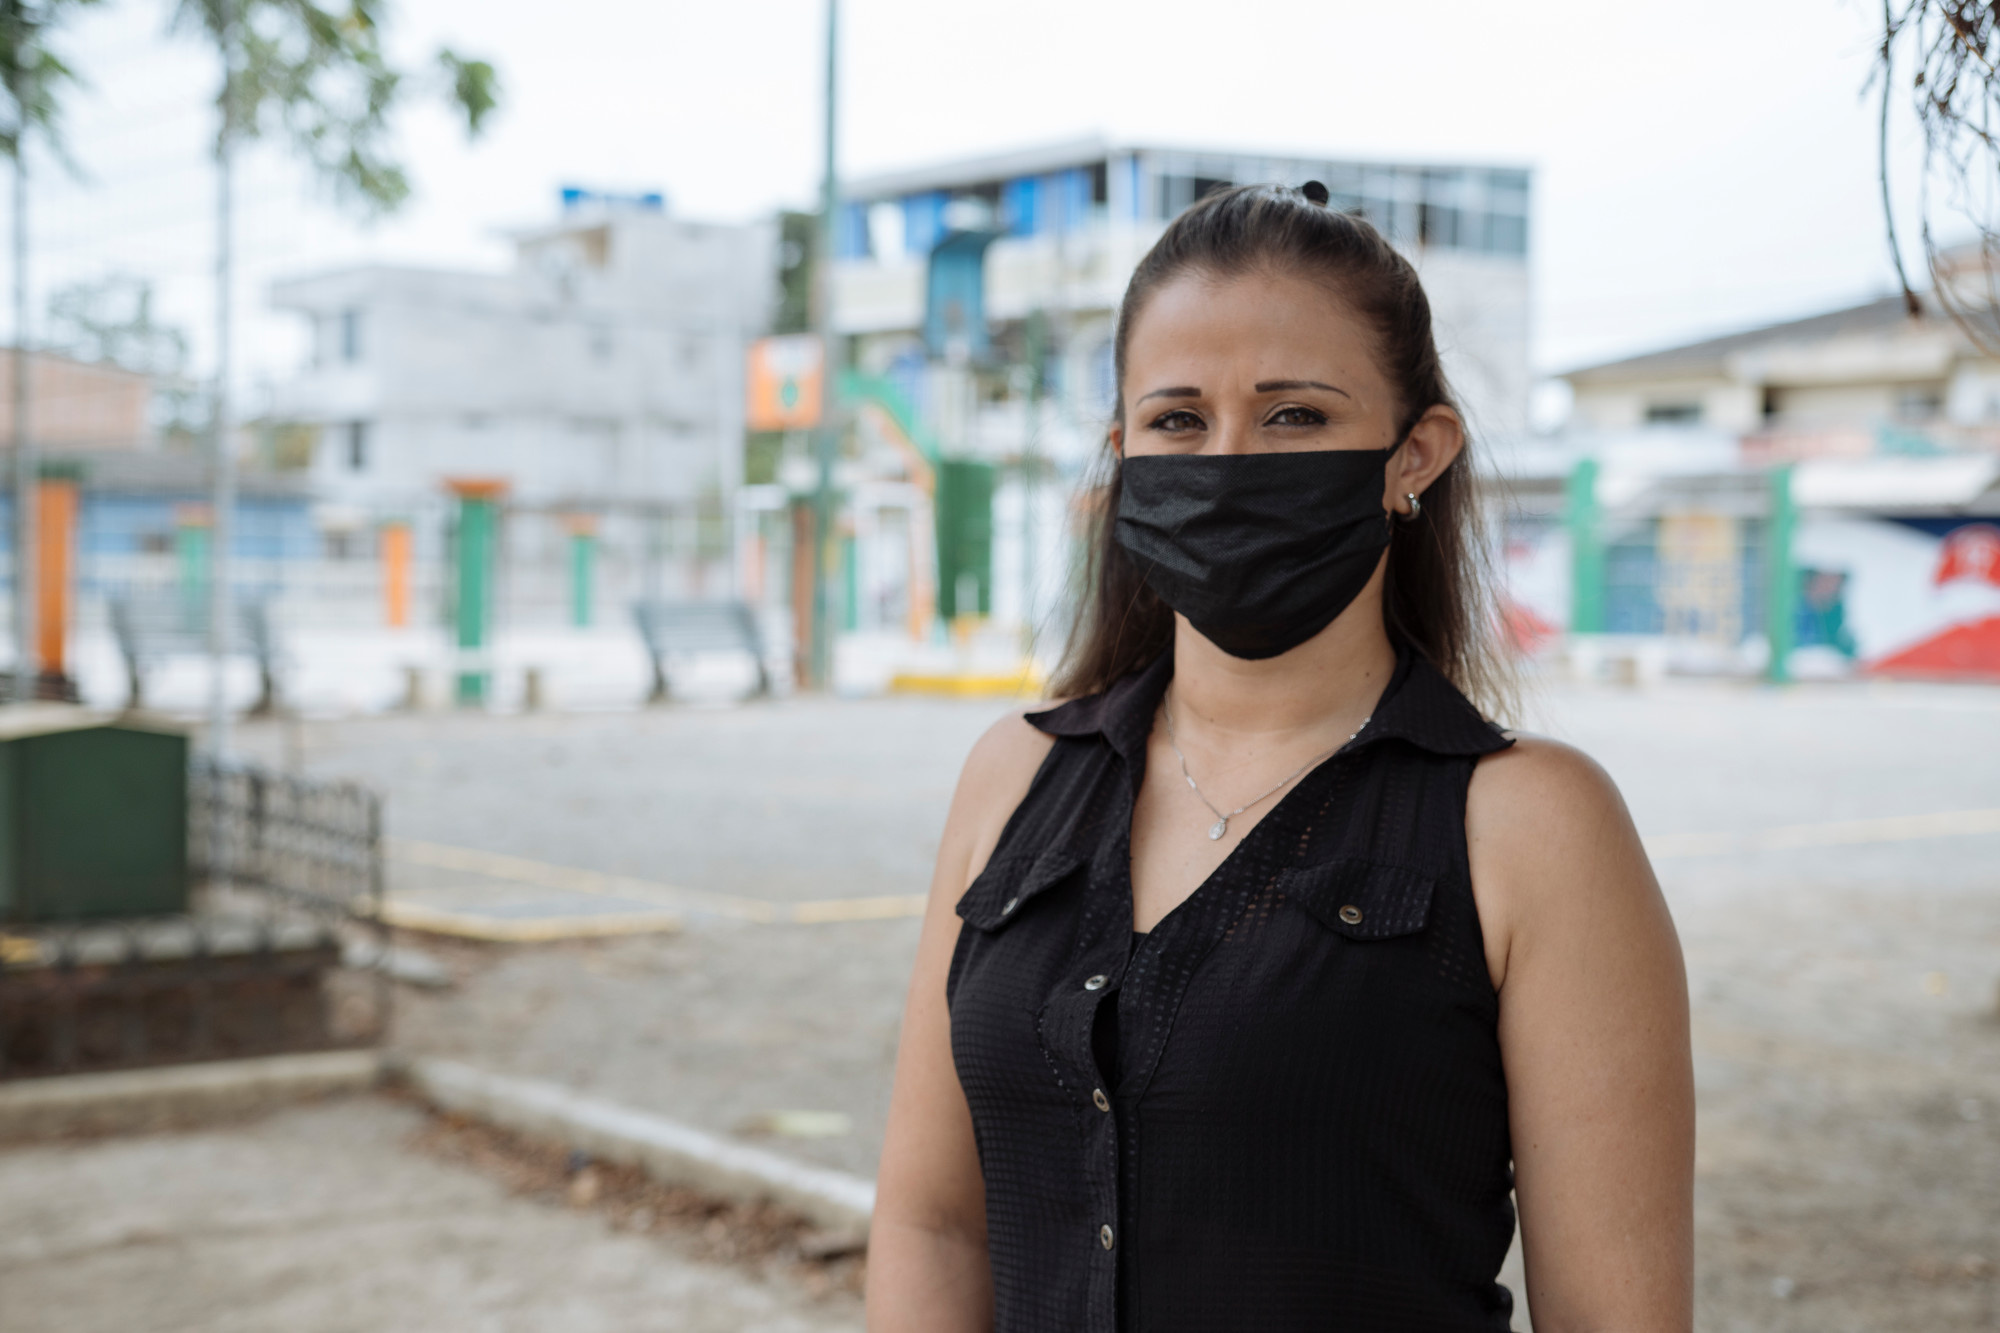 A woman in a face mask stands on a city street.